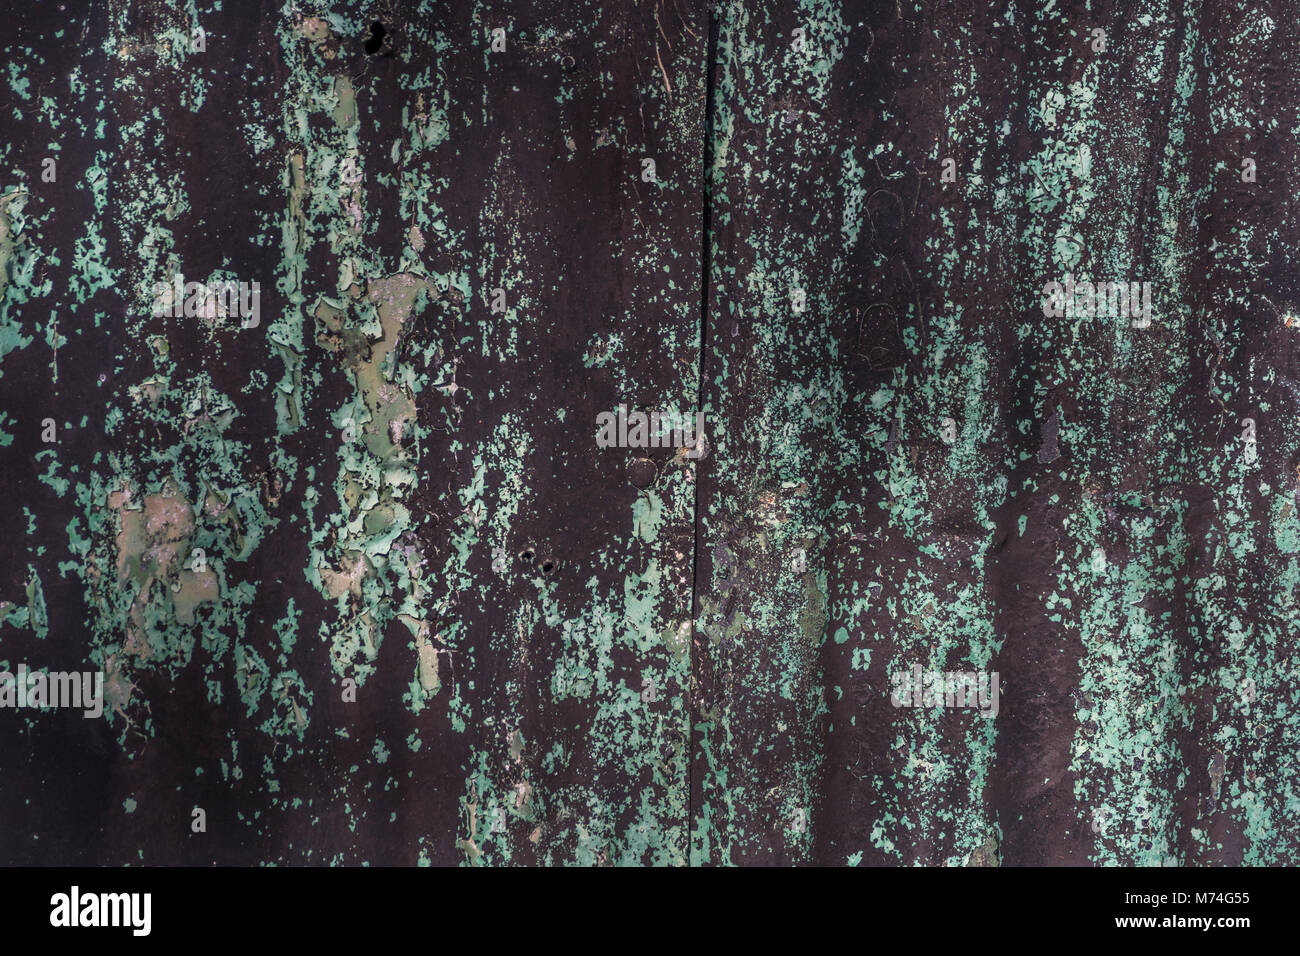 Peeling green and black paint texture on tin sheet - possible abstract photographic backdrop, photography background. - Stock Image